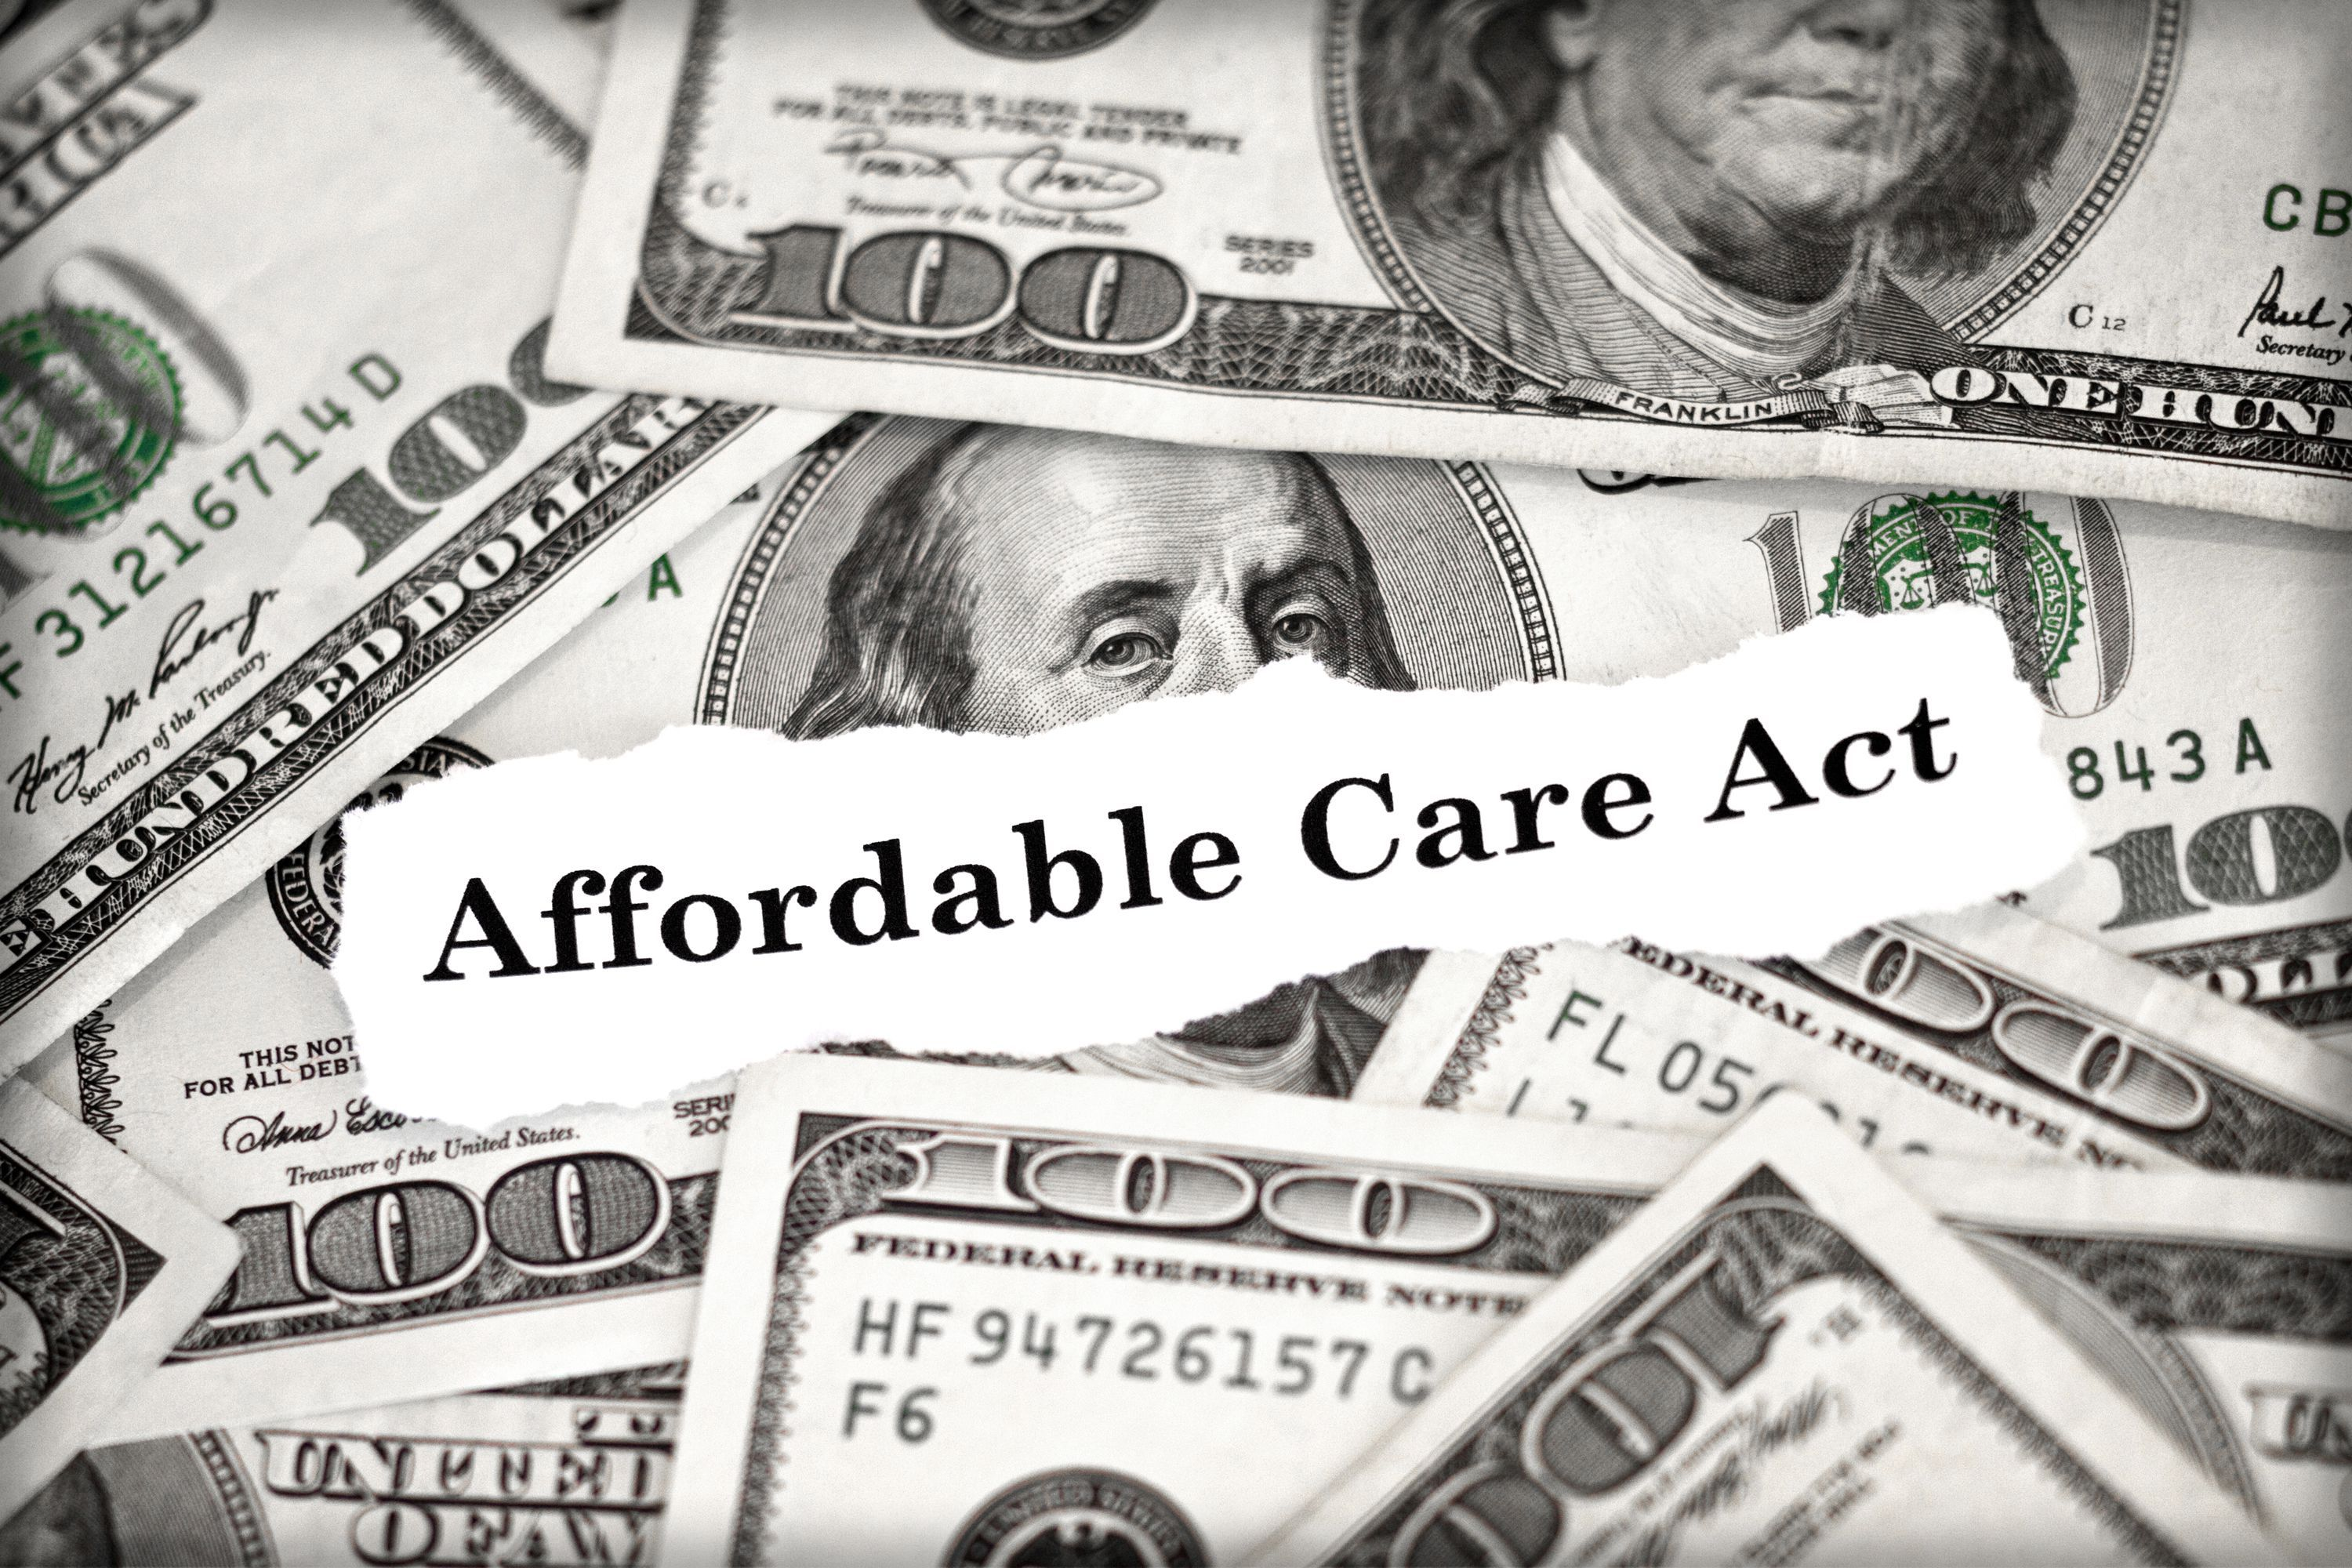 The Affordable Care Act Affects Moral Hazard in the Health